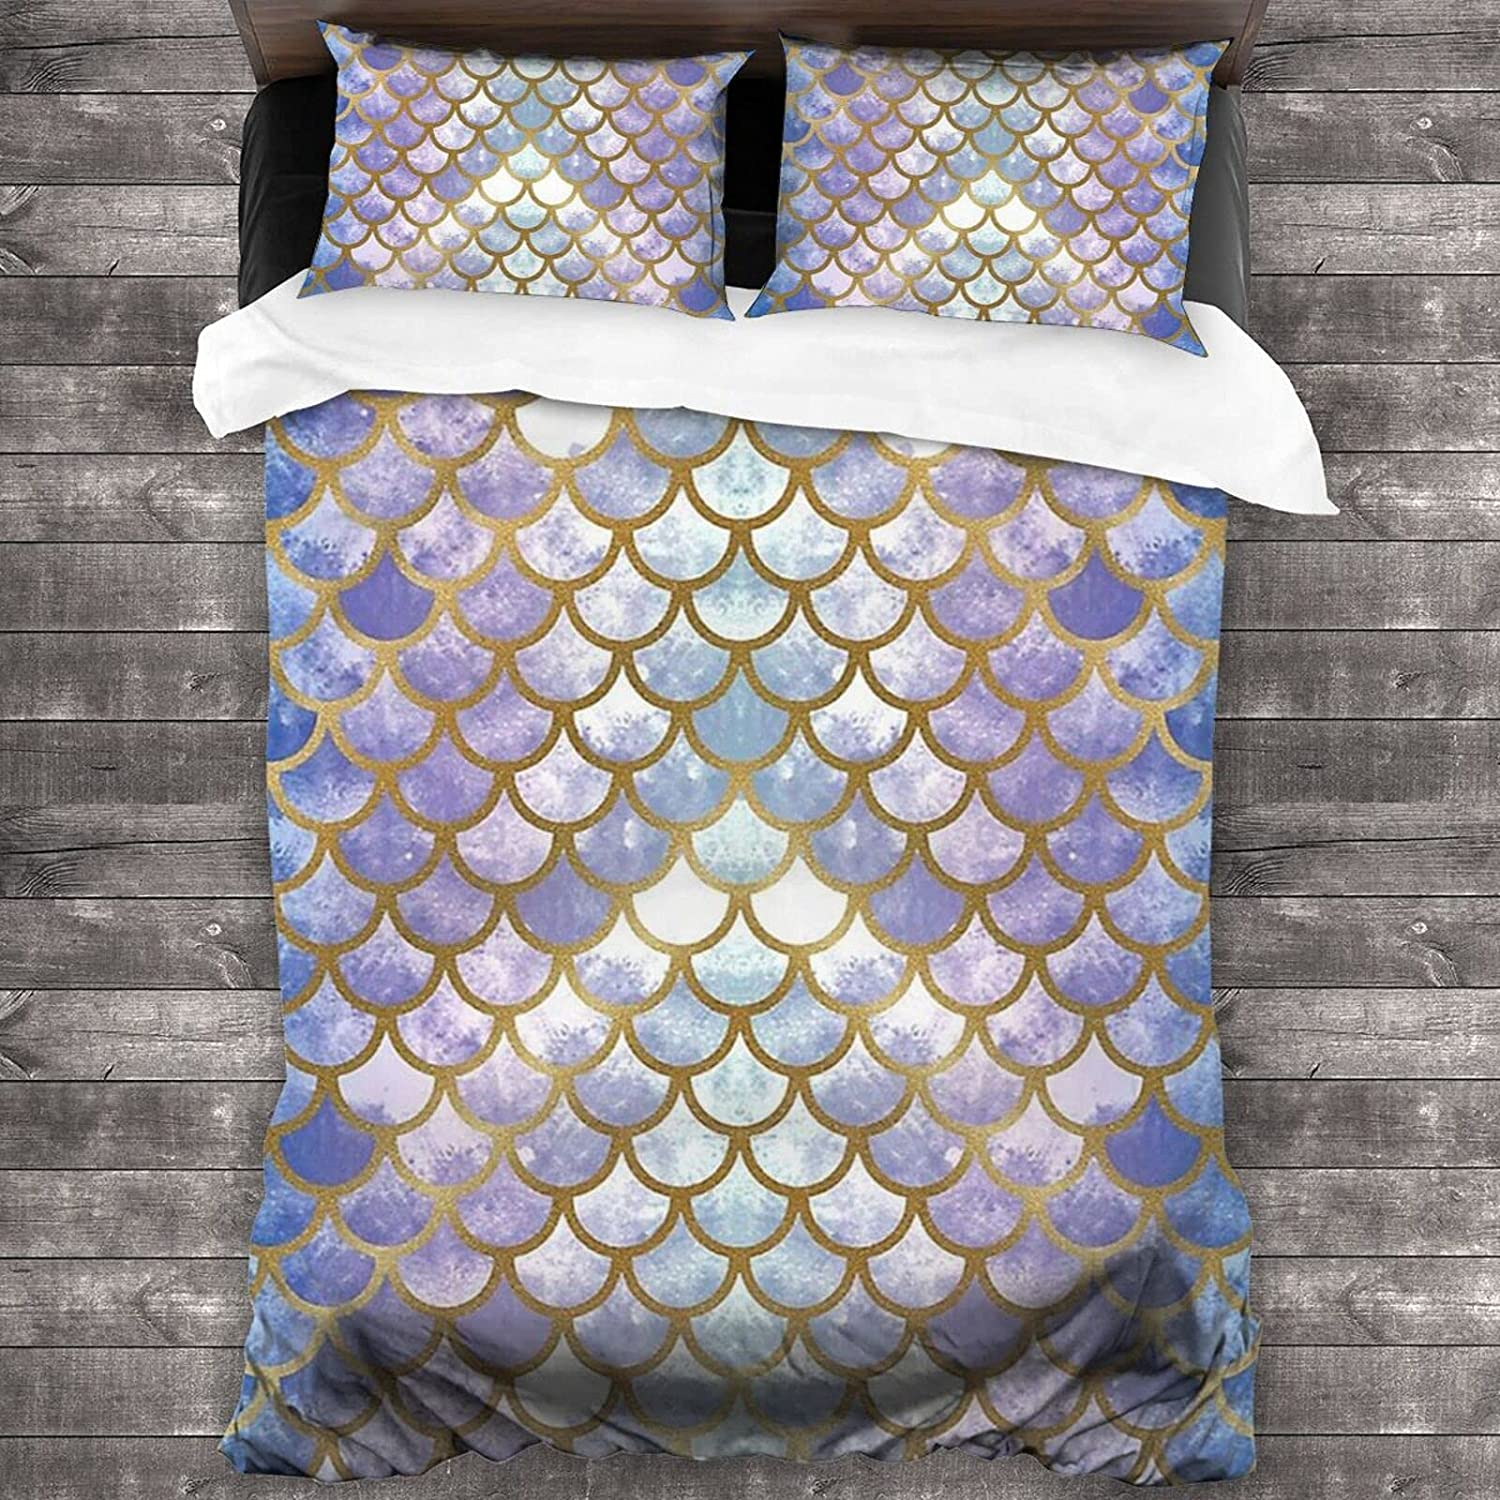 Jreergy Colorful Mermaid Quantity limited Scale 3 Piece Full Que Boston Mall Set Bedding Twin